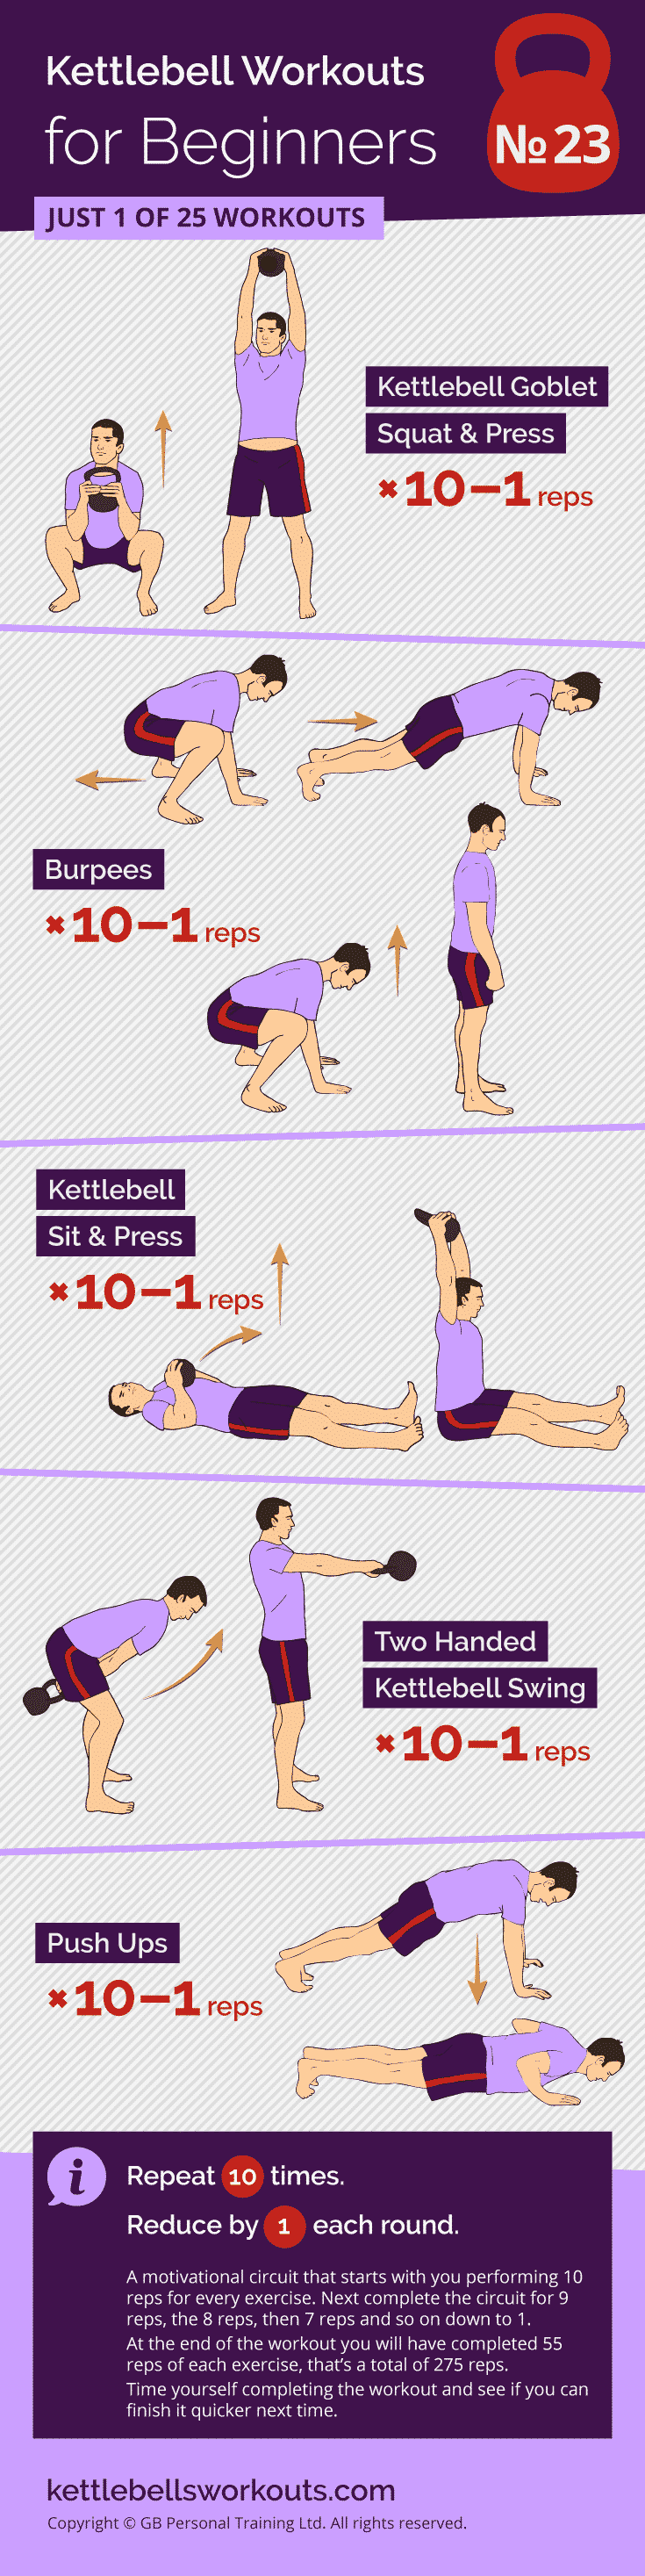 Reps Countdown Kettlebell Workout